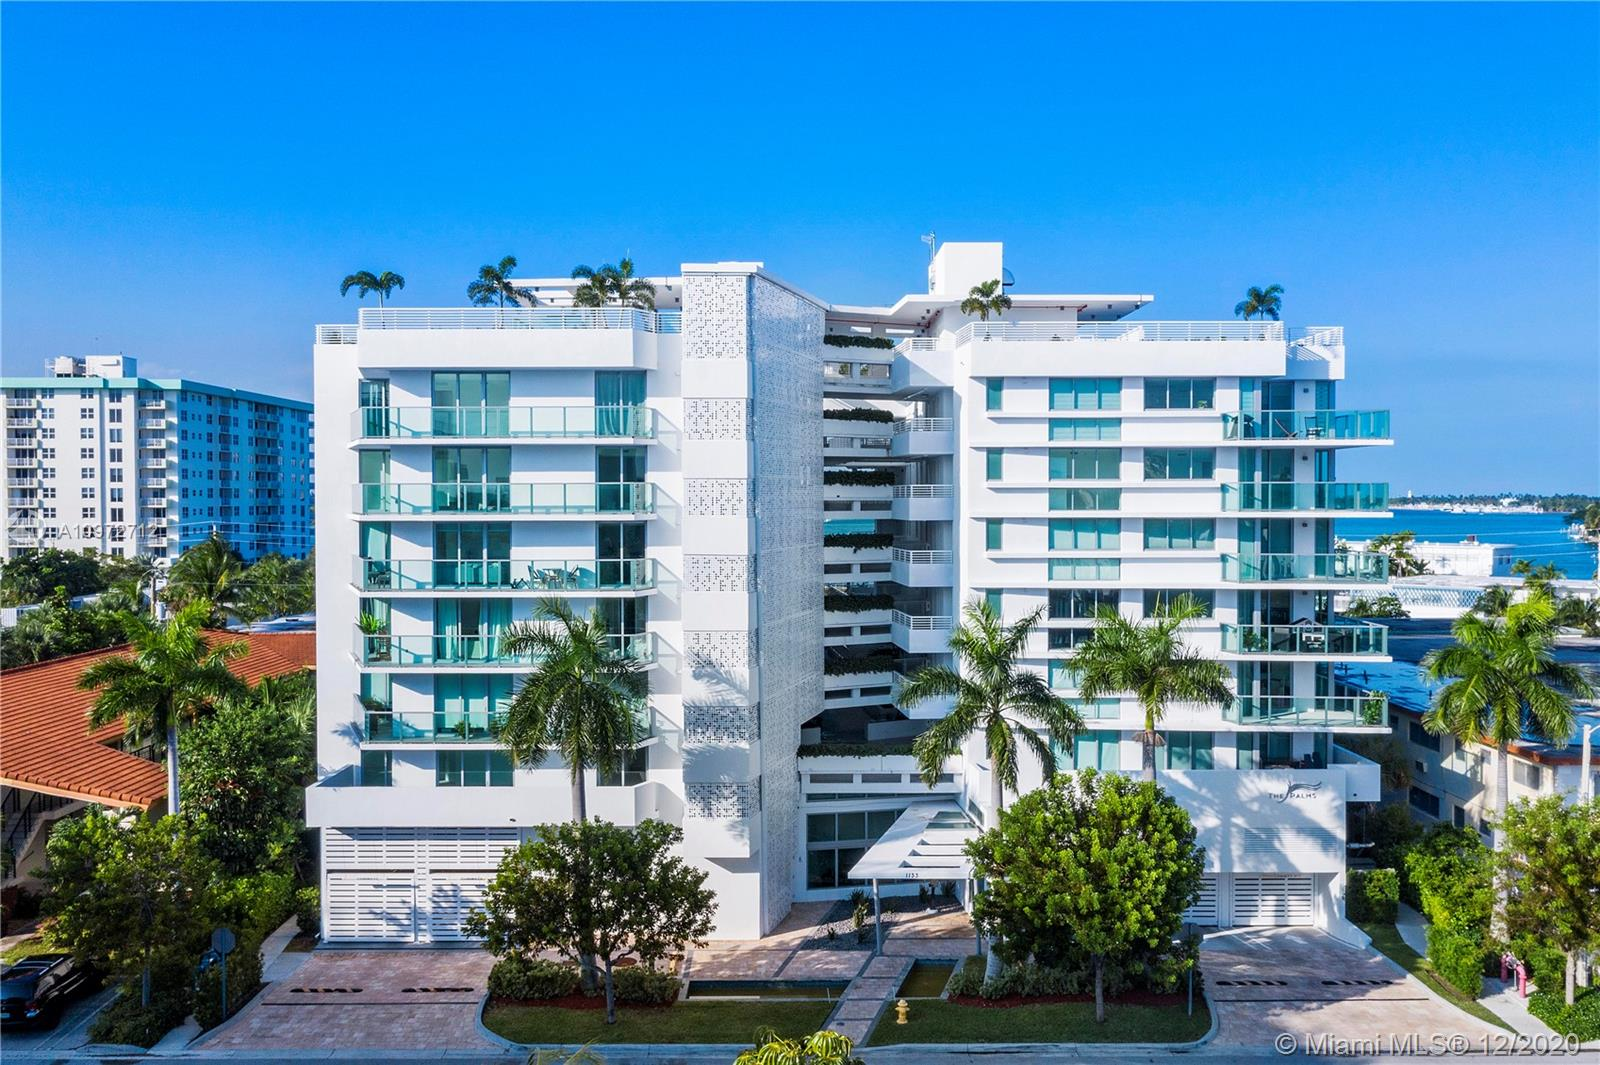 Completed in 2018, The Palms Residences is a 42 unit boutique style building in sought after Bay Harbor Islands. This bright, corner unit offers one spacious balcony, stainless steel appliances, tile floors, washer and dryer inside, window shades, built in closets and a wine cooler. The unit faces Southeast towards Bal Harbour and has beautiful views of Biscayne Bay, the Haulover sandbar and garden views. Unit comes with a large storage cage in the garage. Two garage covered parking spaces. Building has rooftop pool and hot tub with community grill and sink. Walking distance to A+ schools, great restaurants, shopping and places of worship. Rented through 12/31/21 at $2,900 per month.